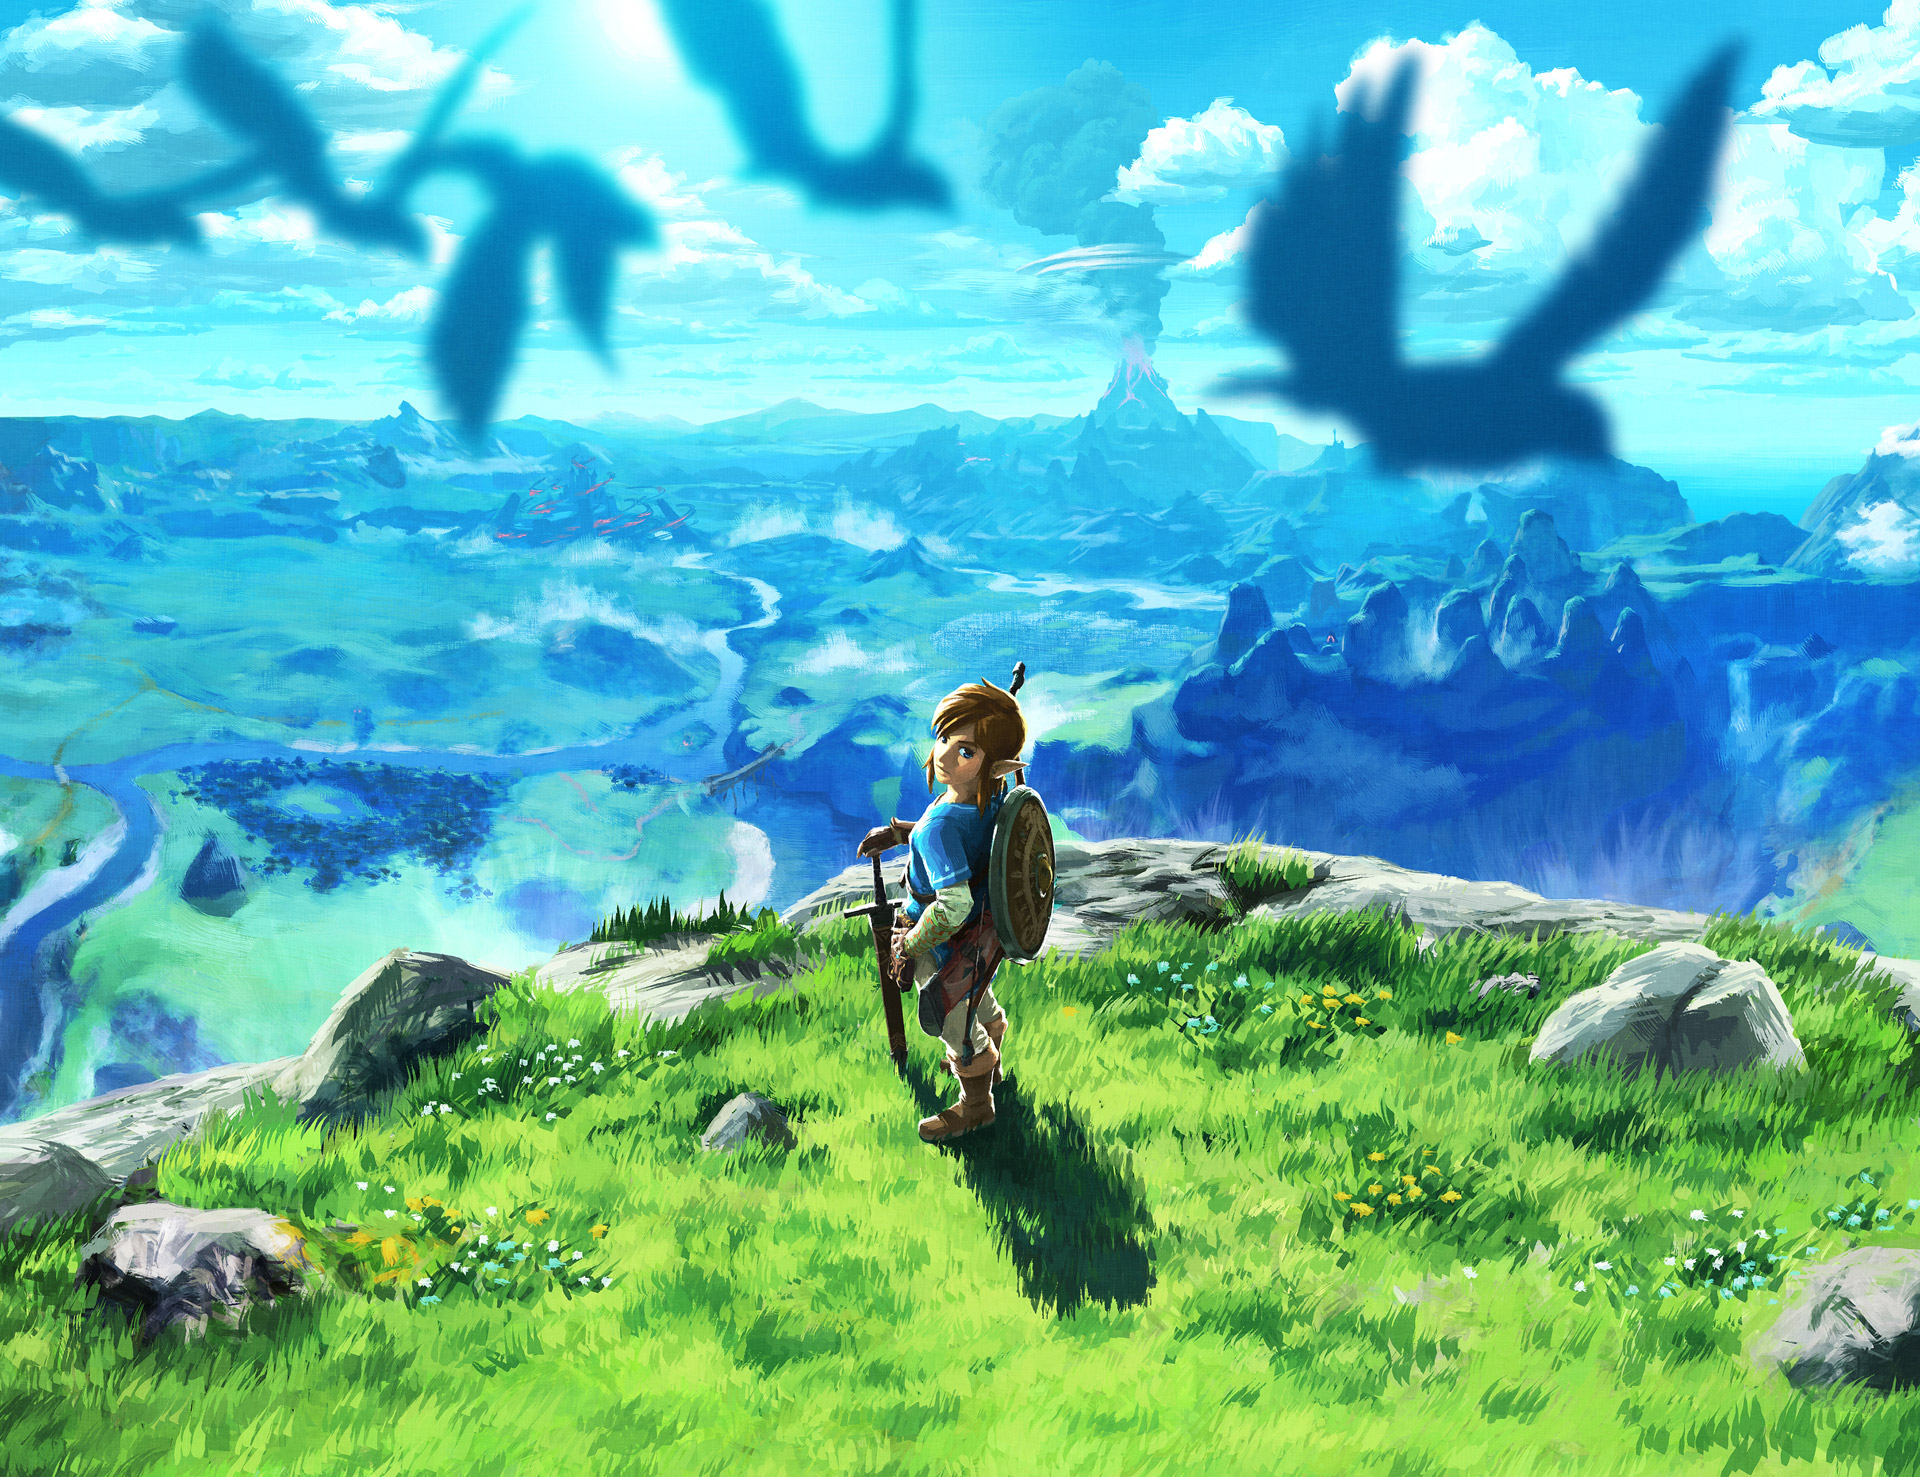 Is The Legend of Zelda: Breath of the Wild a perfect game?